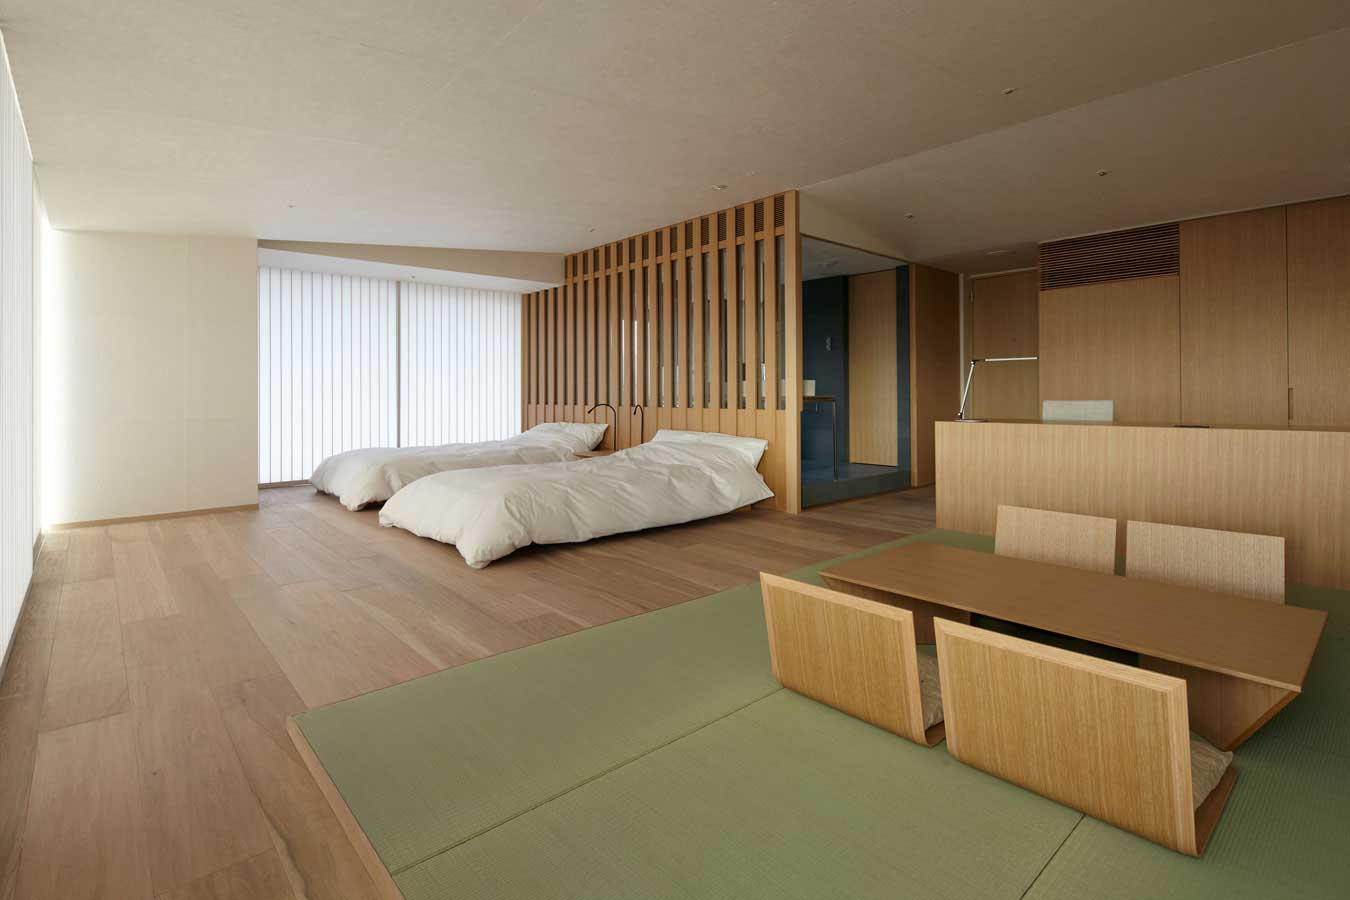 Japan Bedroom Decor Modern Japanese Bedroom Design 11 Designs Enhancedhomes Org